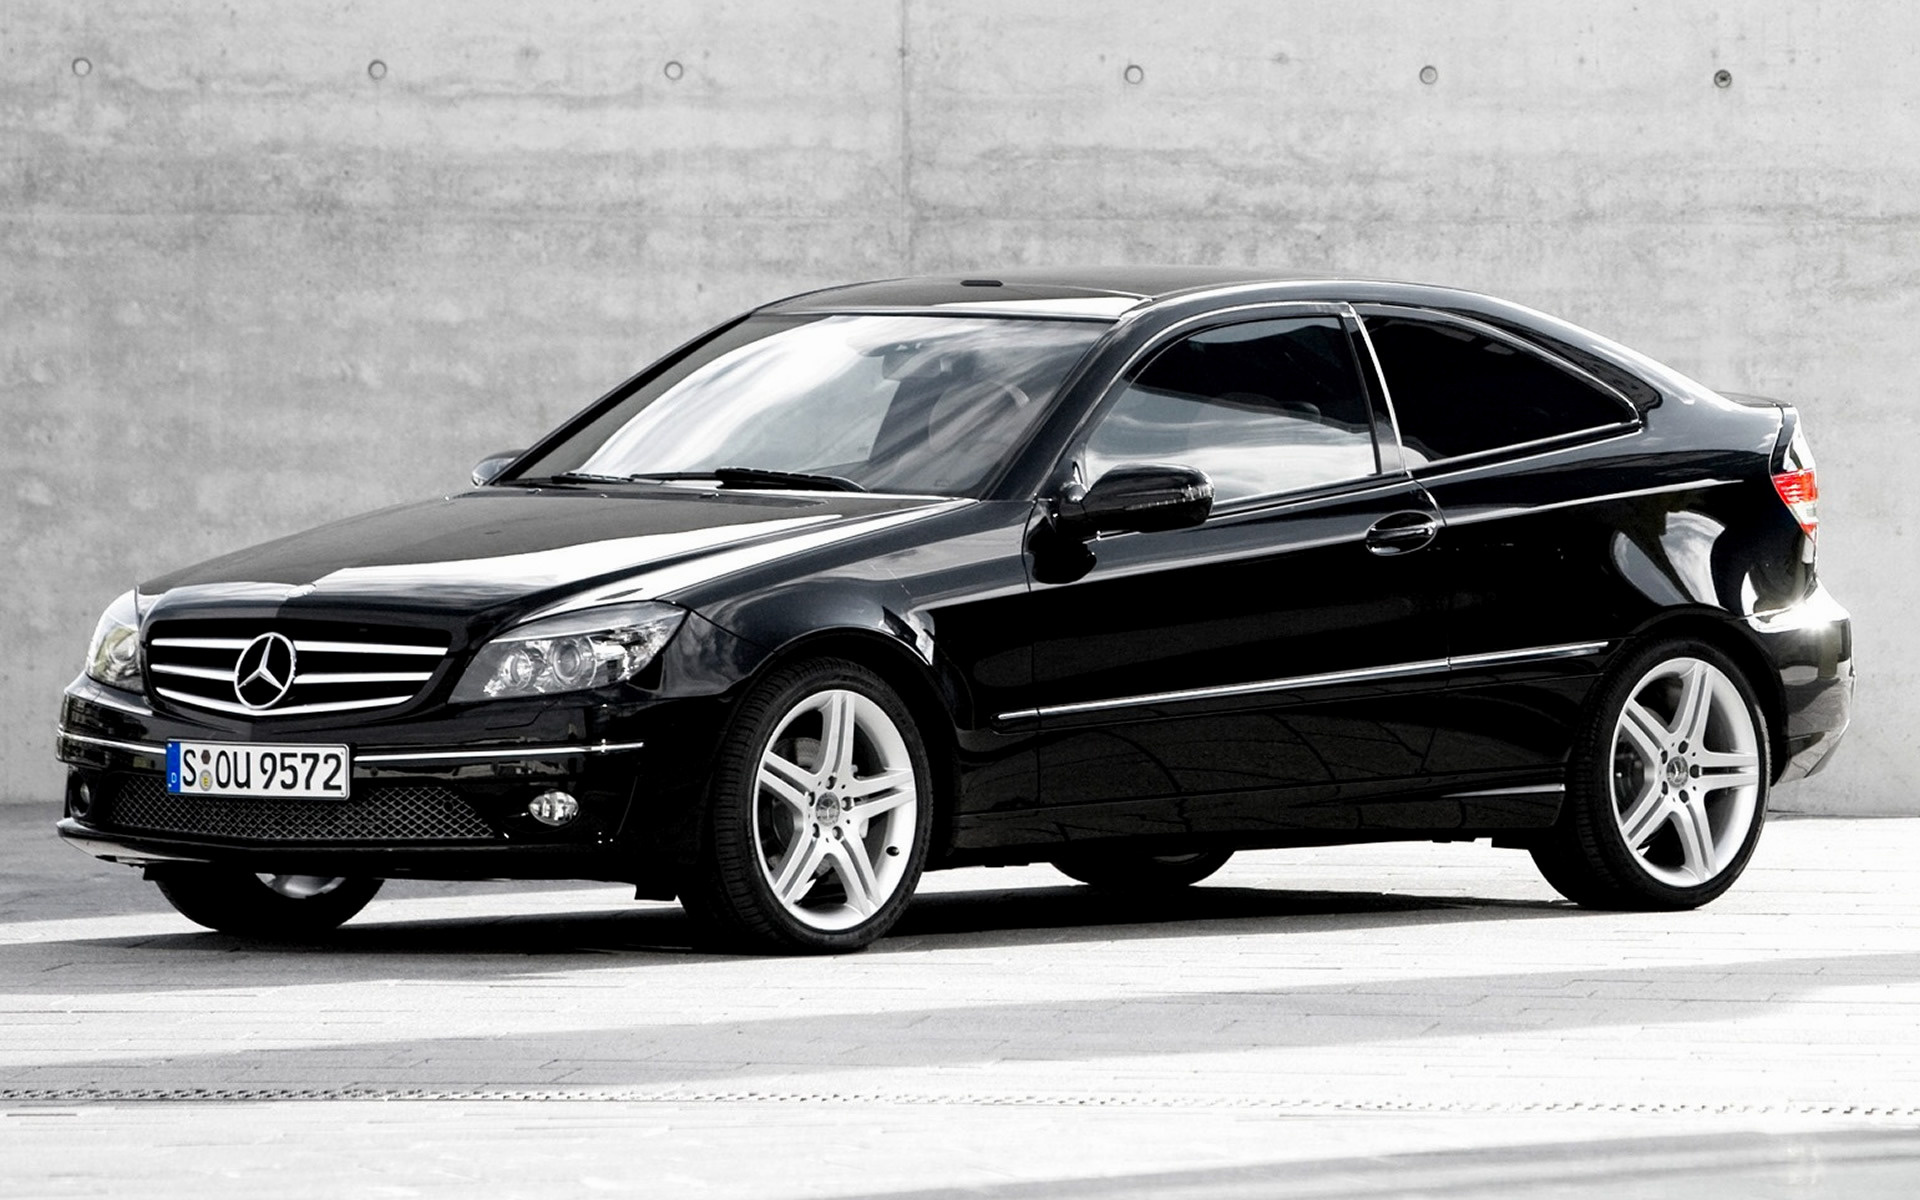 Mercedes Benz Clc Class 2008 Wallpapers And Hd Images